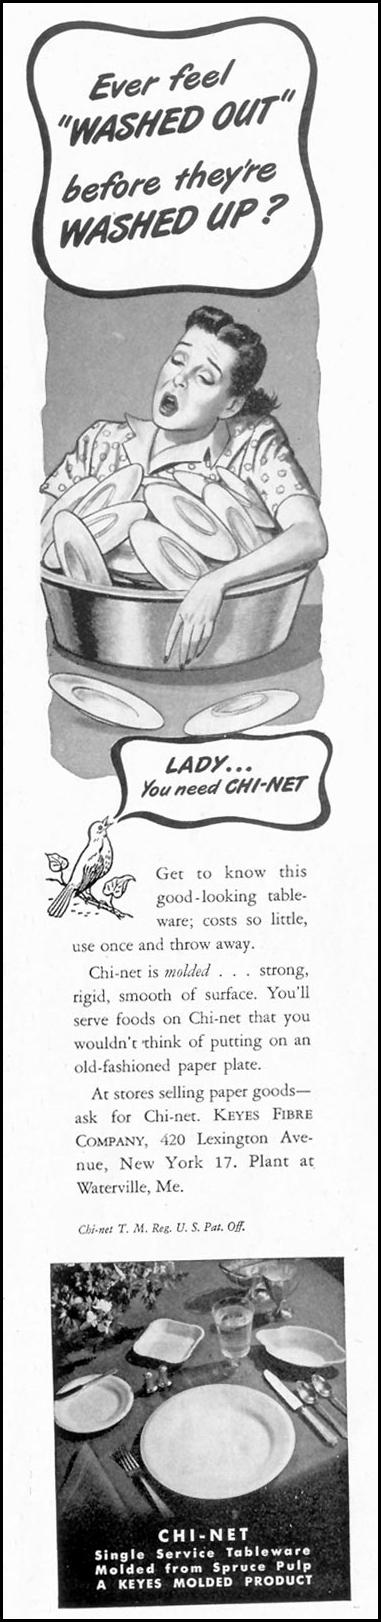 CHI-NET PAPER PLATES SATURDAY EVENING POST 05/19/1945 p. 61